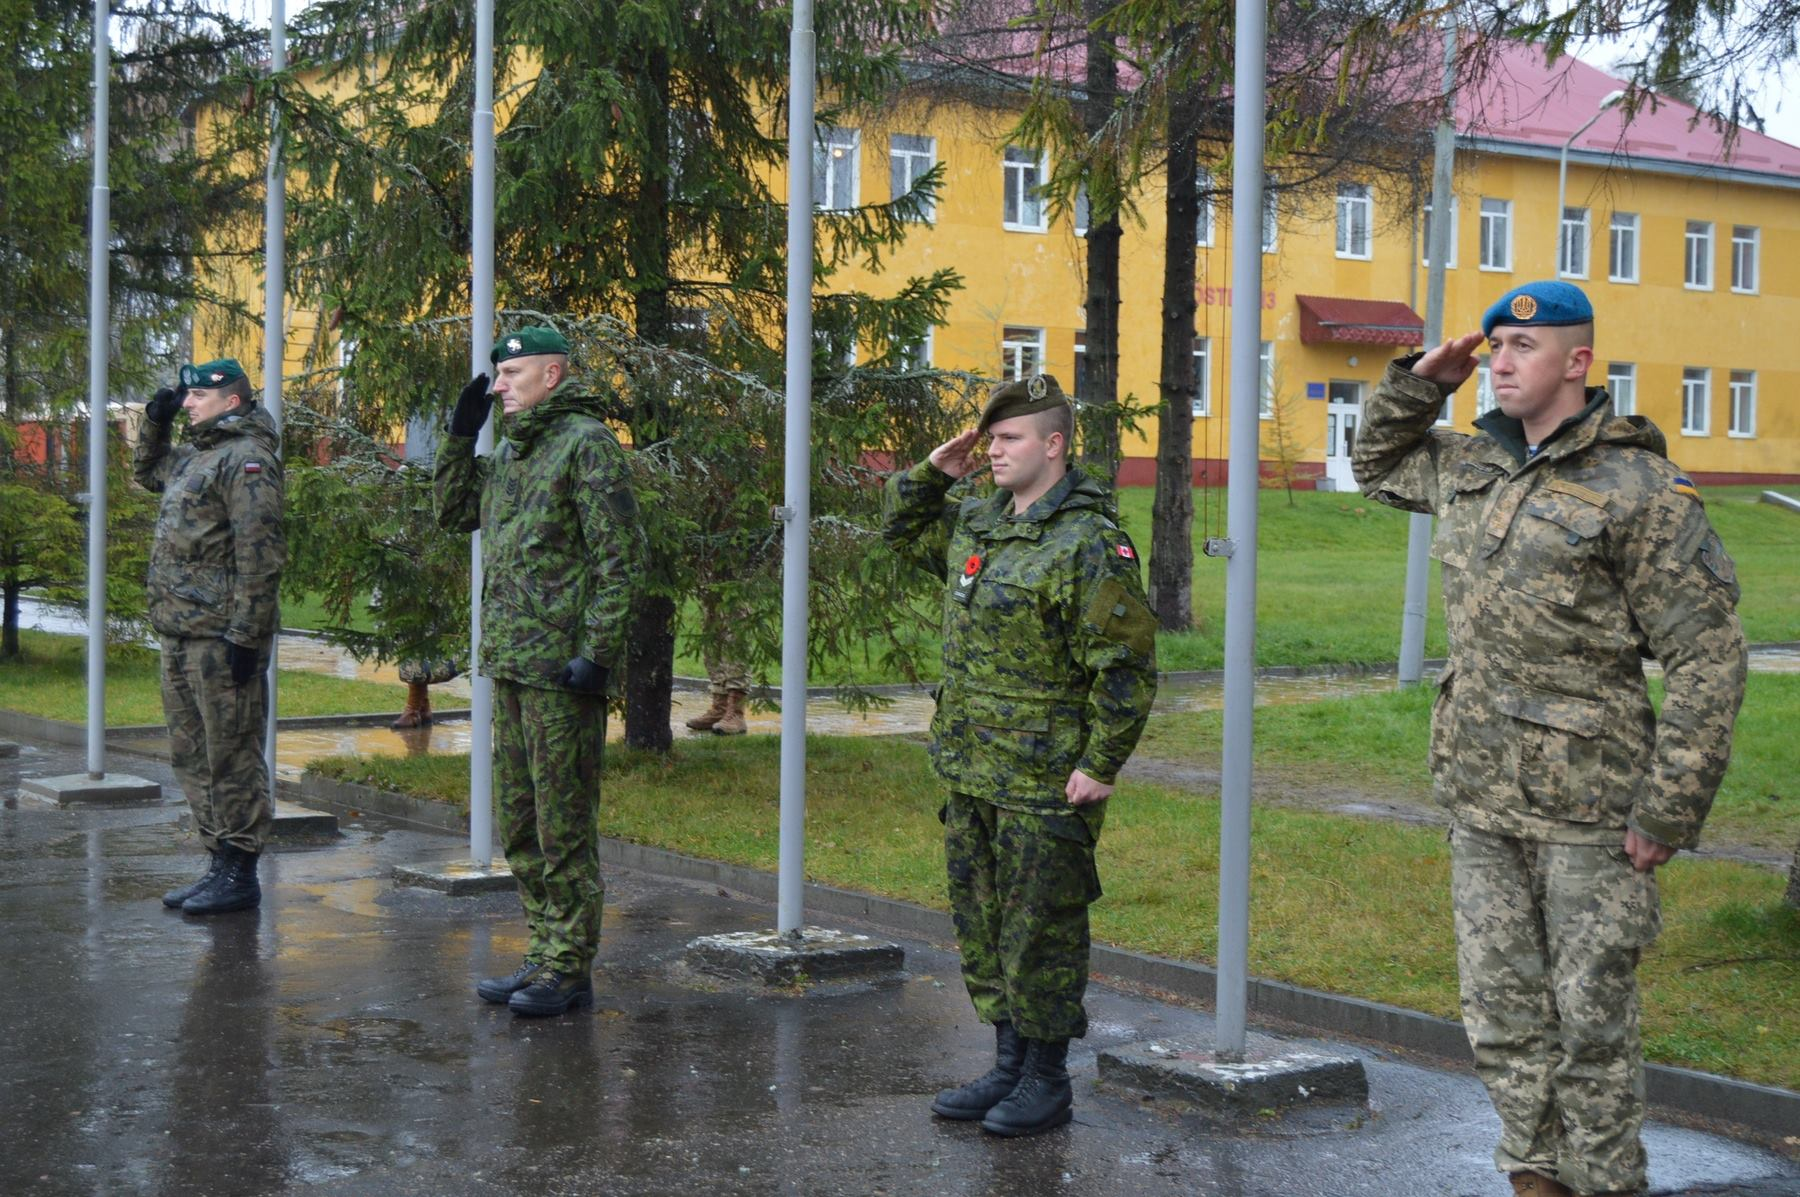 A soldier from Poland, Lithuania, Canada, and Ukraine salute during the national anthems at the opening ceremony for Exercise MAPLE ARCH 16 in YAVORIV, Ukraine on November 7, 2016.